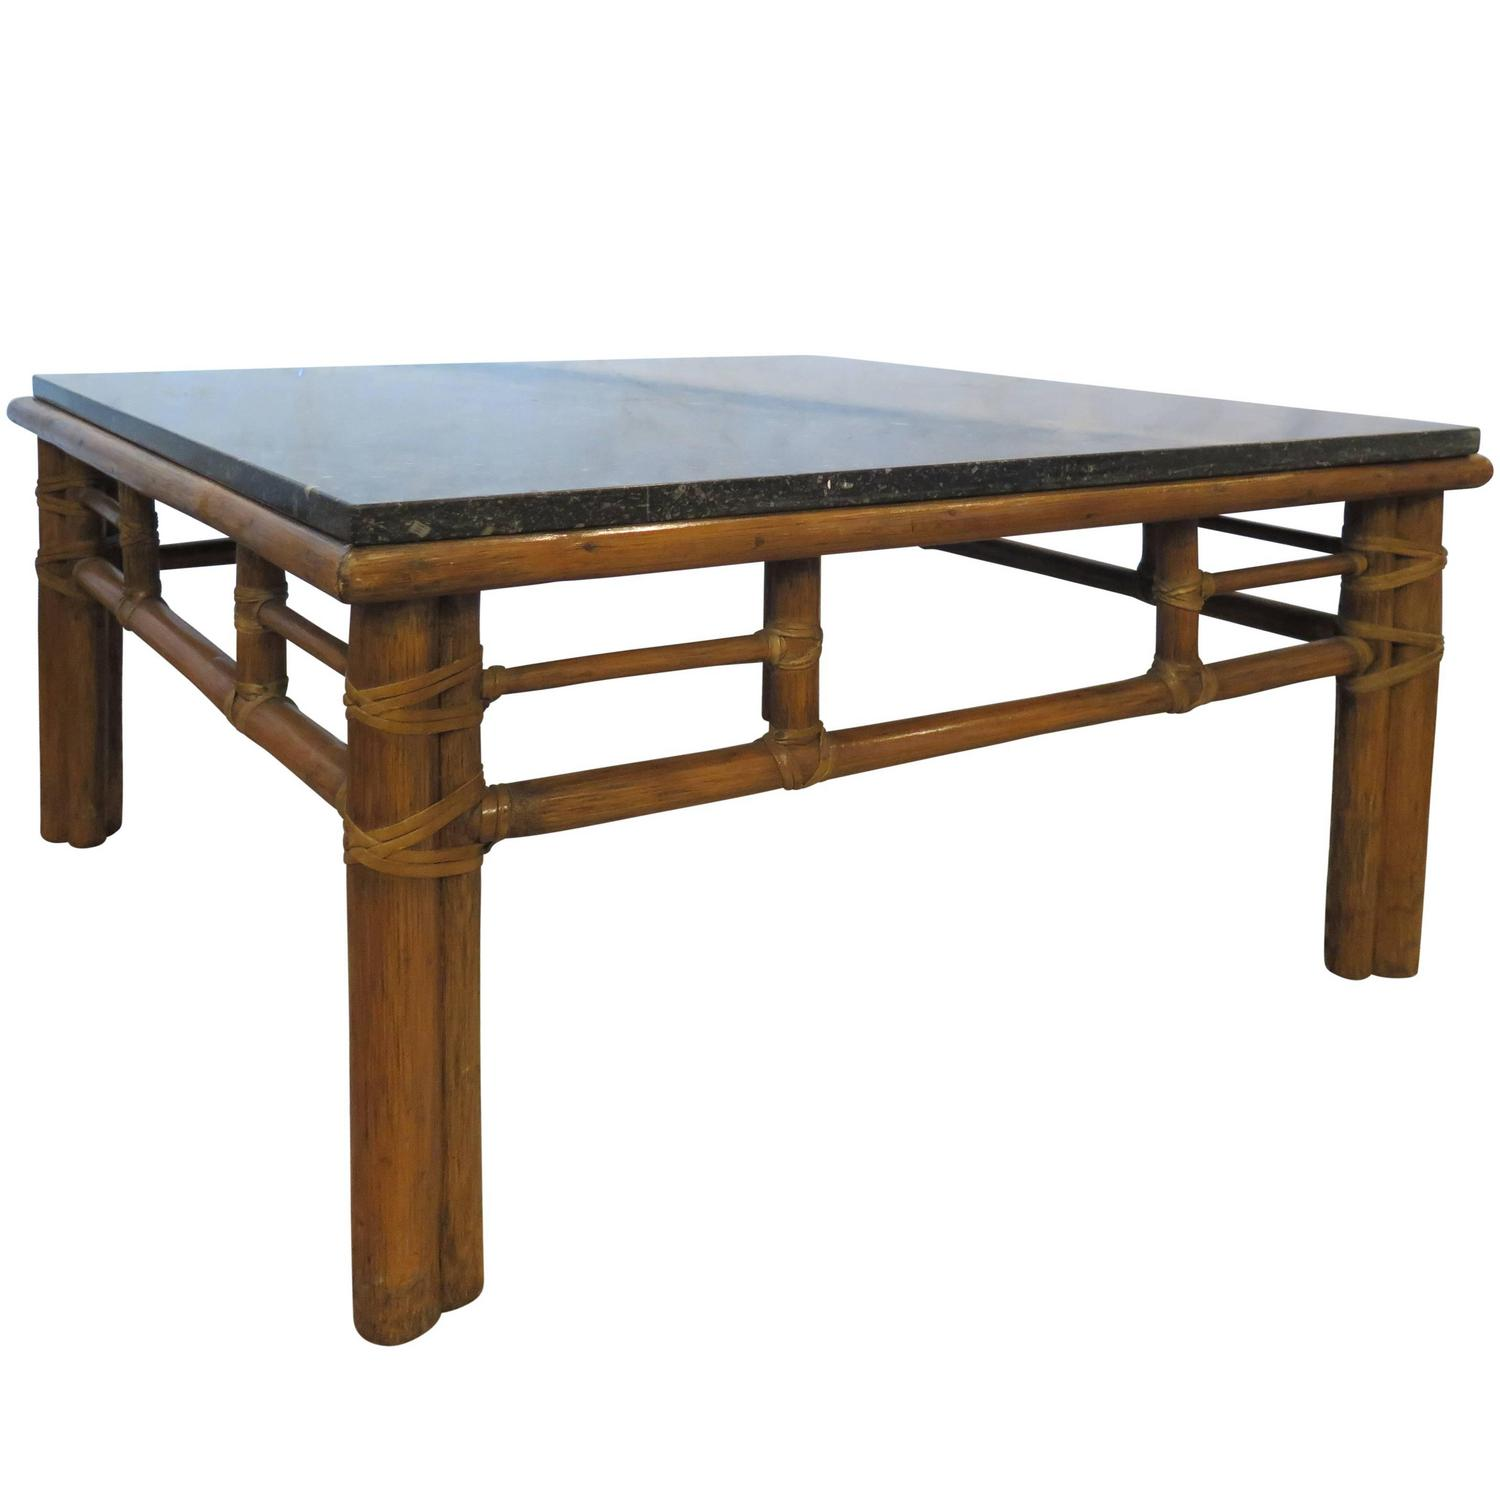 Mcguire coffee table with black marble top for sale at 1stdibs Stone coffee table top